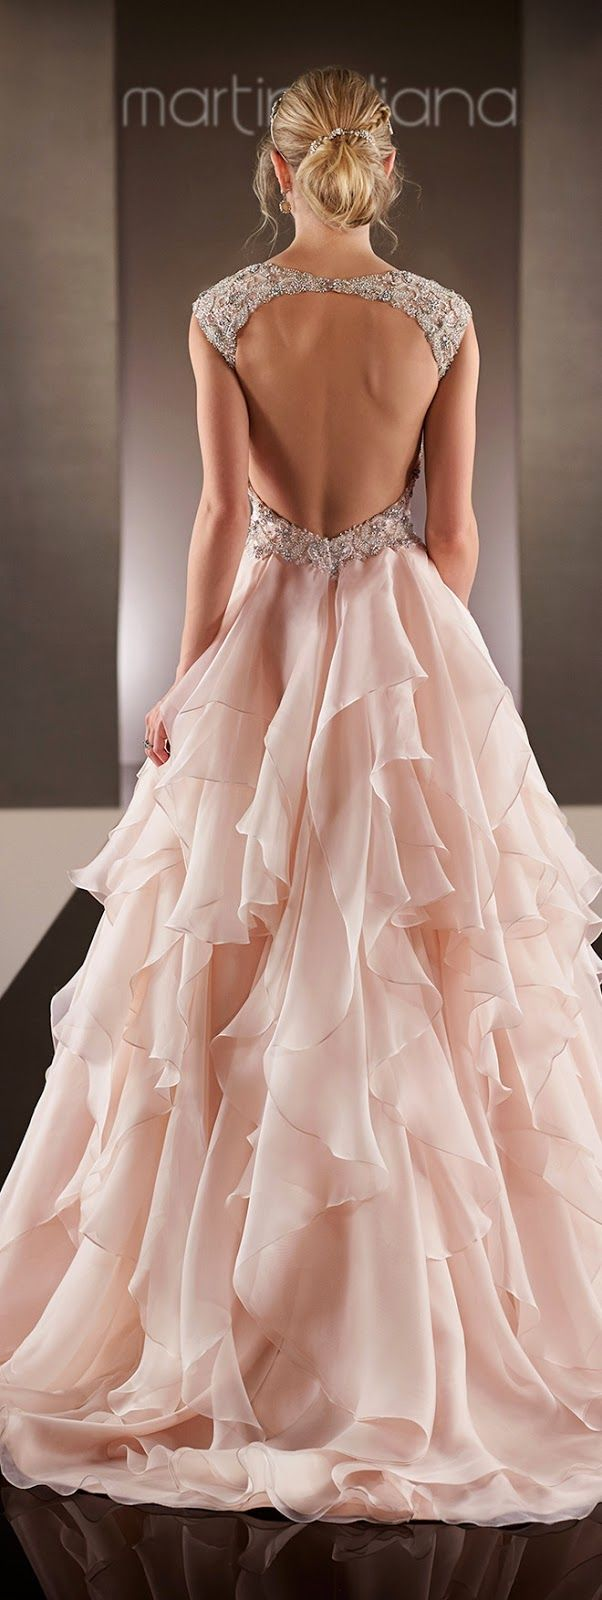 Glamorous Blush Wedding Ideas to Inspire - blush wedding dress; Martina Liana 2015